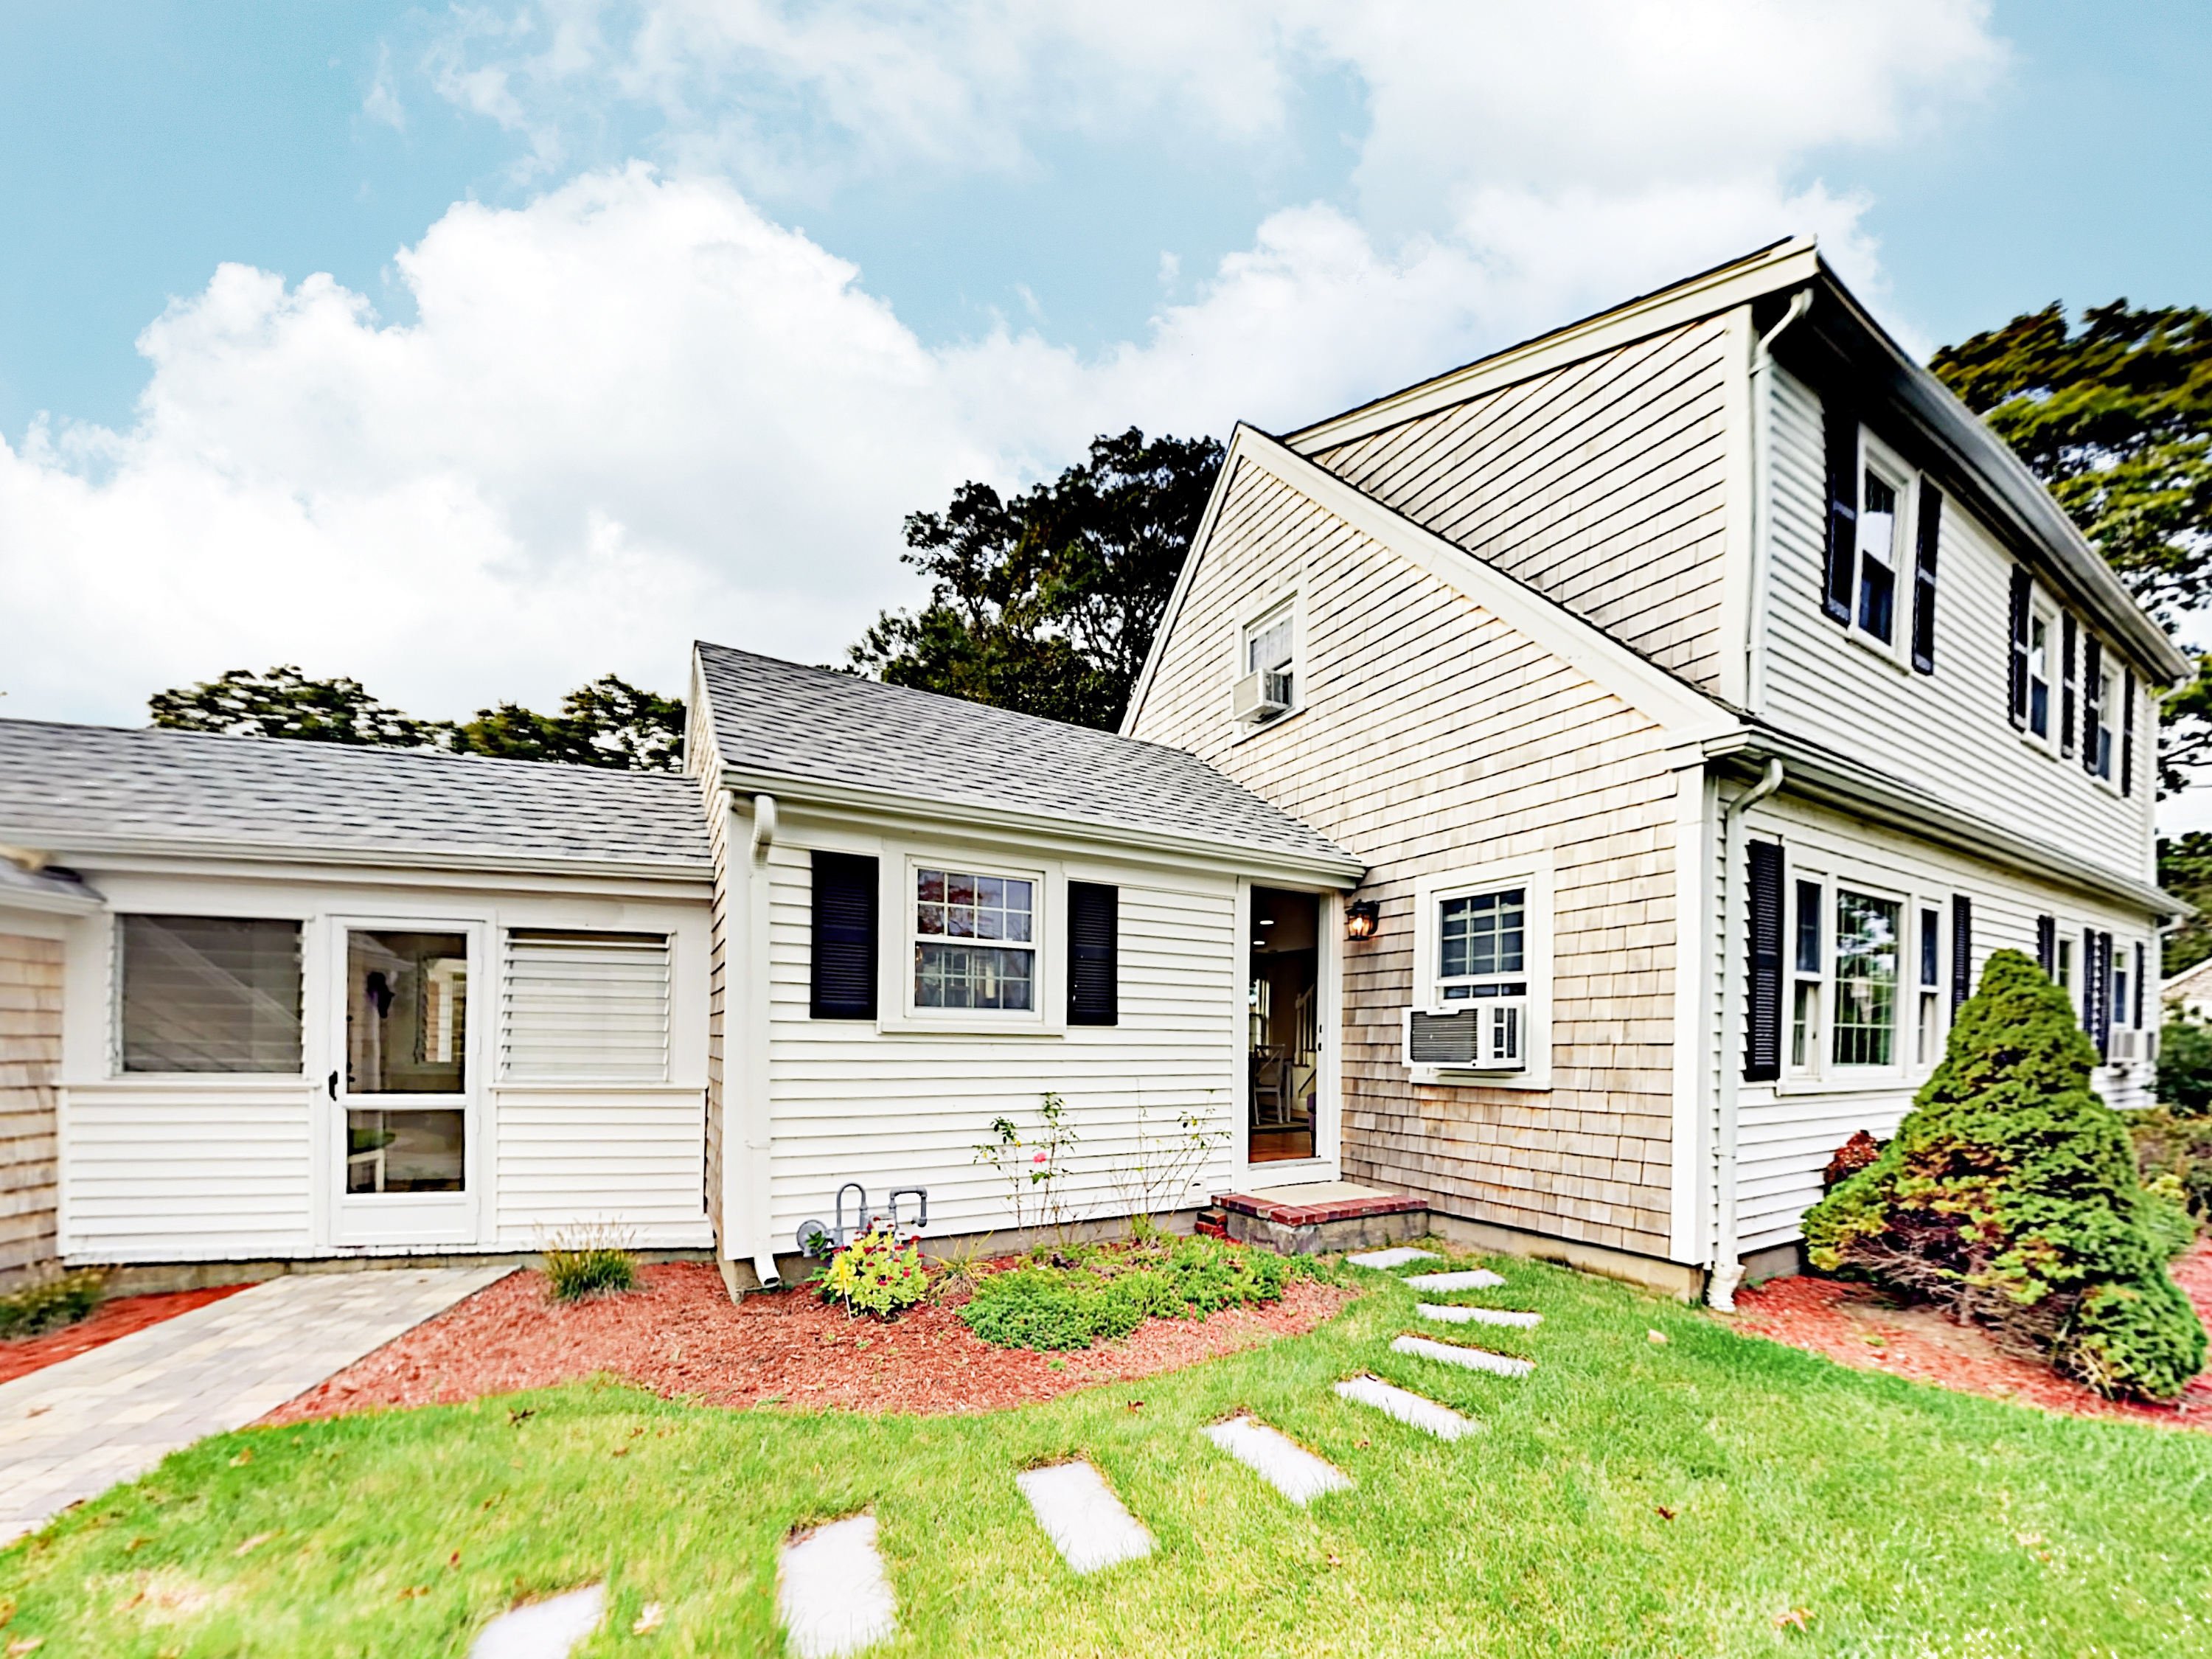 South Yarmouth MA Vacation Rental Welcome to South